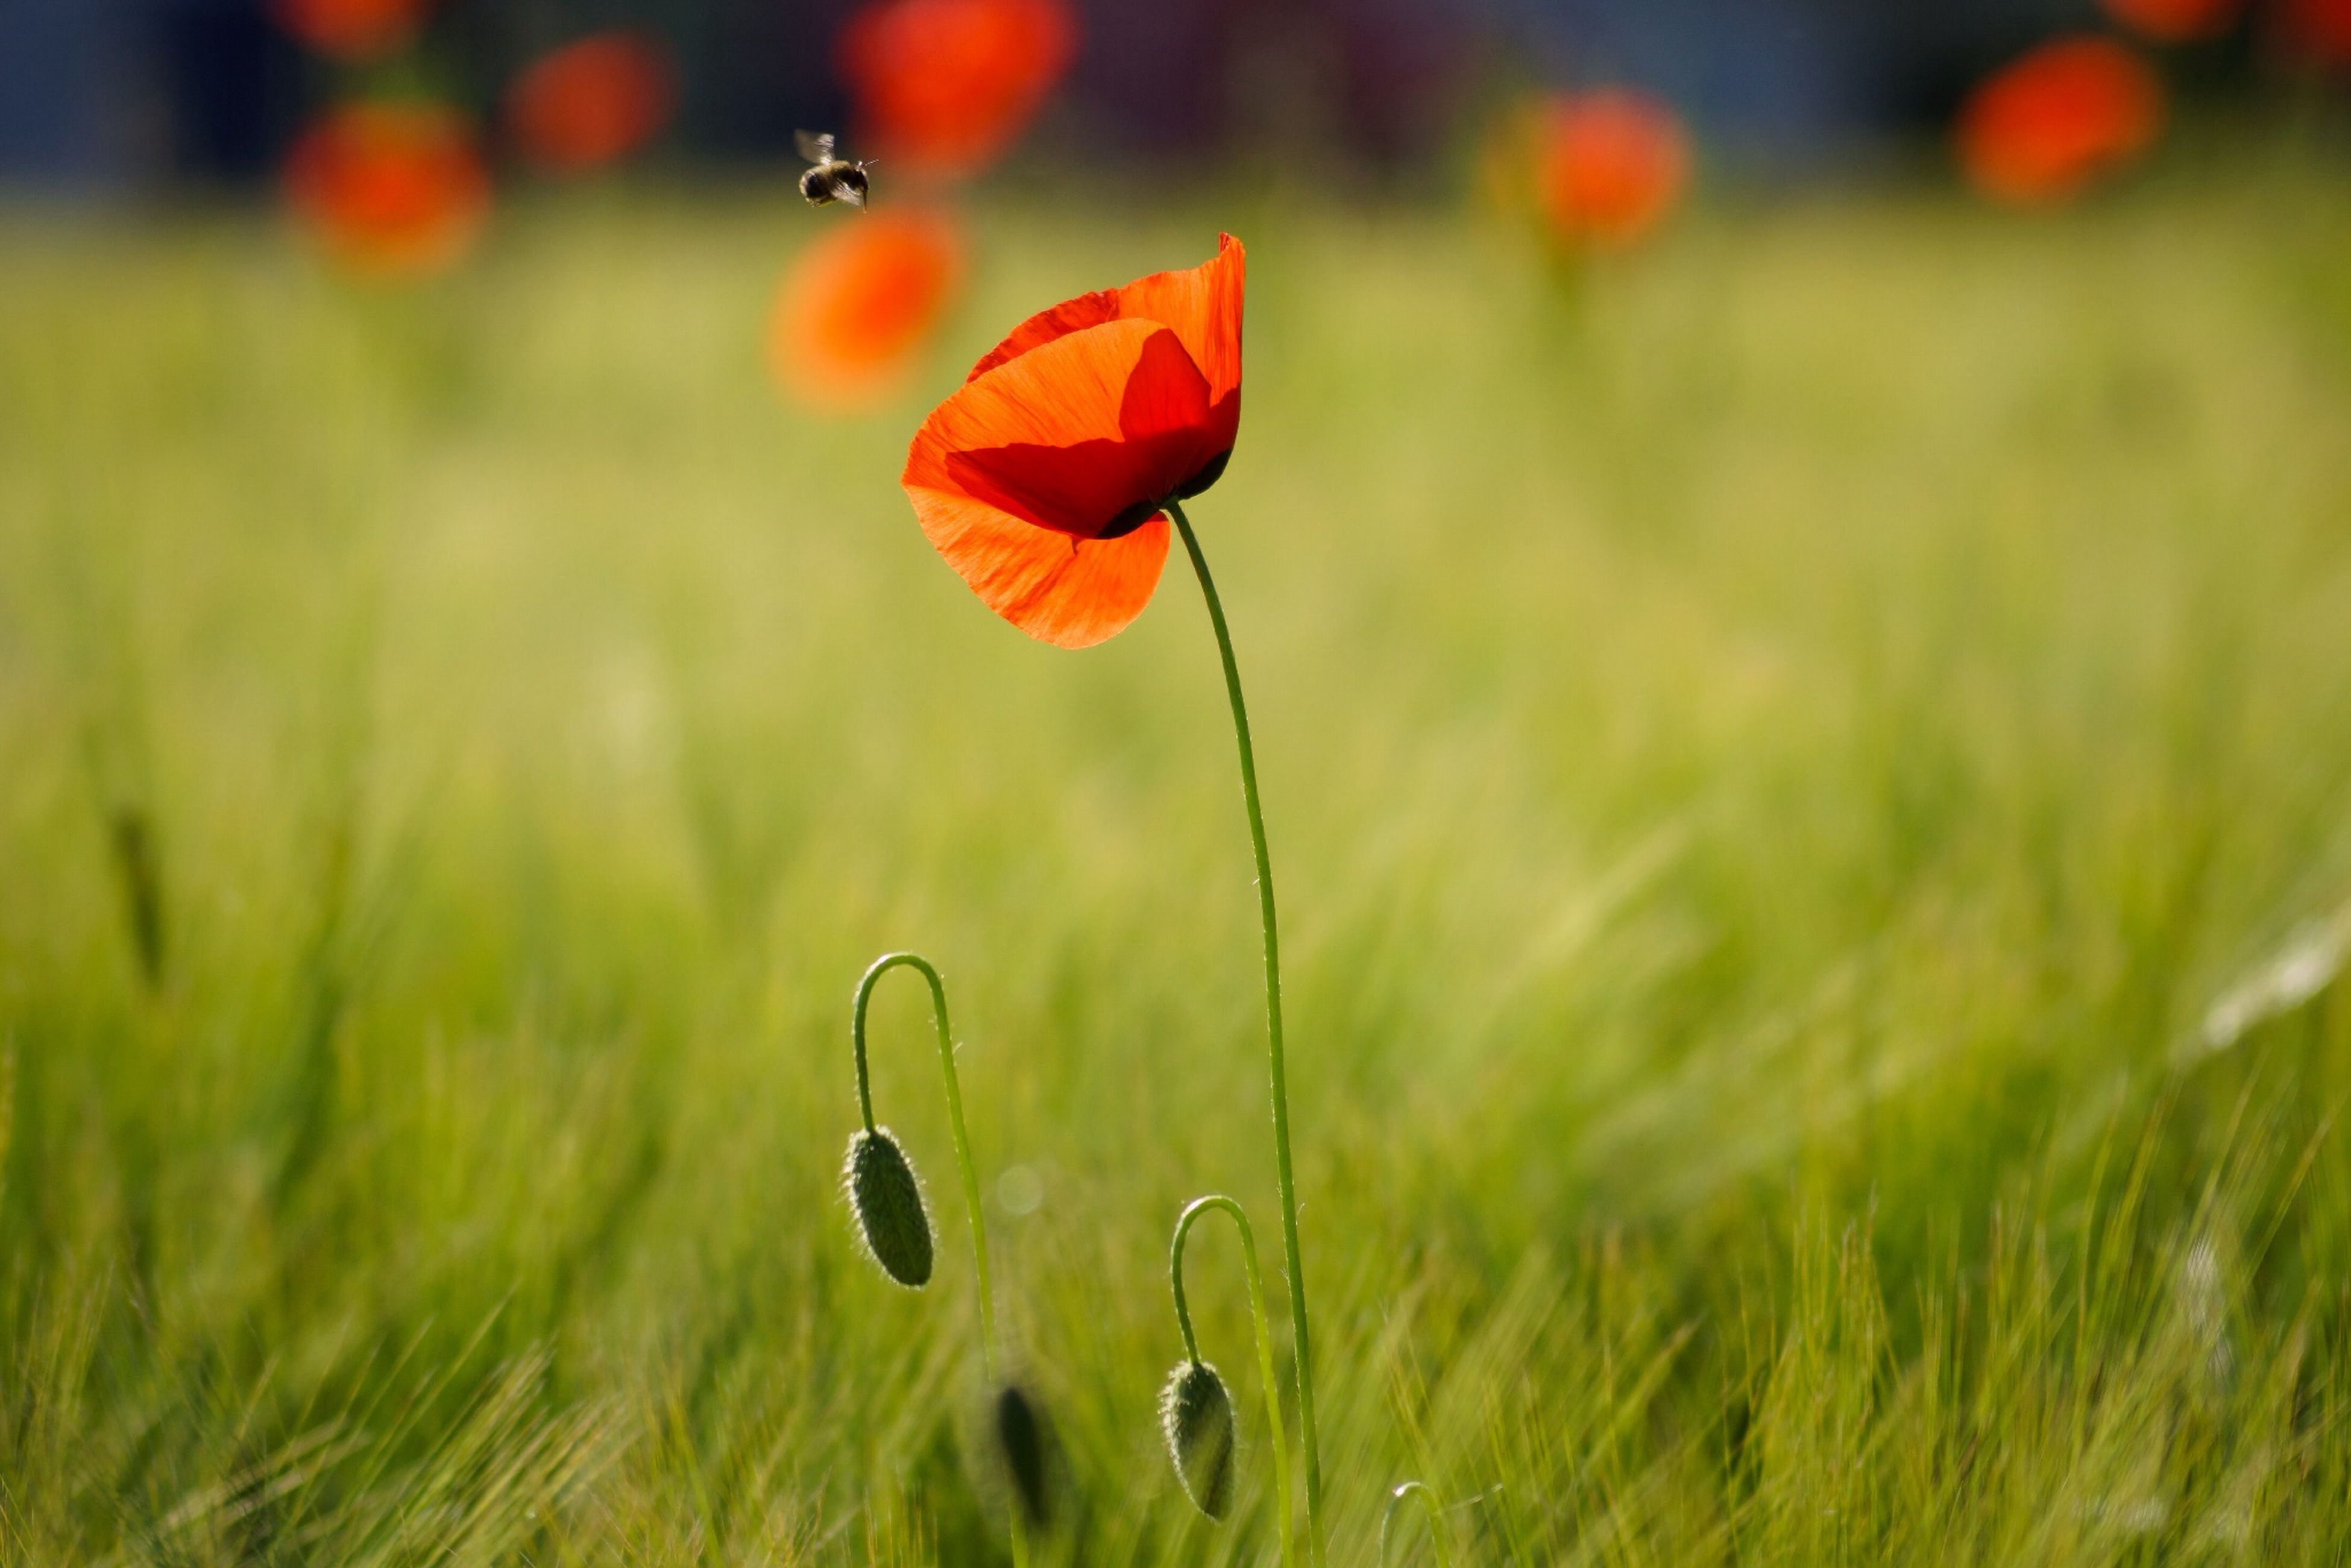 red, orange color, growth, flower, beauty in nature, plant, fragility, nature, freshness, focus on foreground, close-up, water, stem, field, poppy, selective focus, outdoors, sunset, leaf, no people